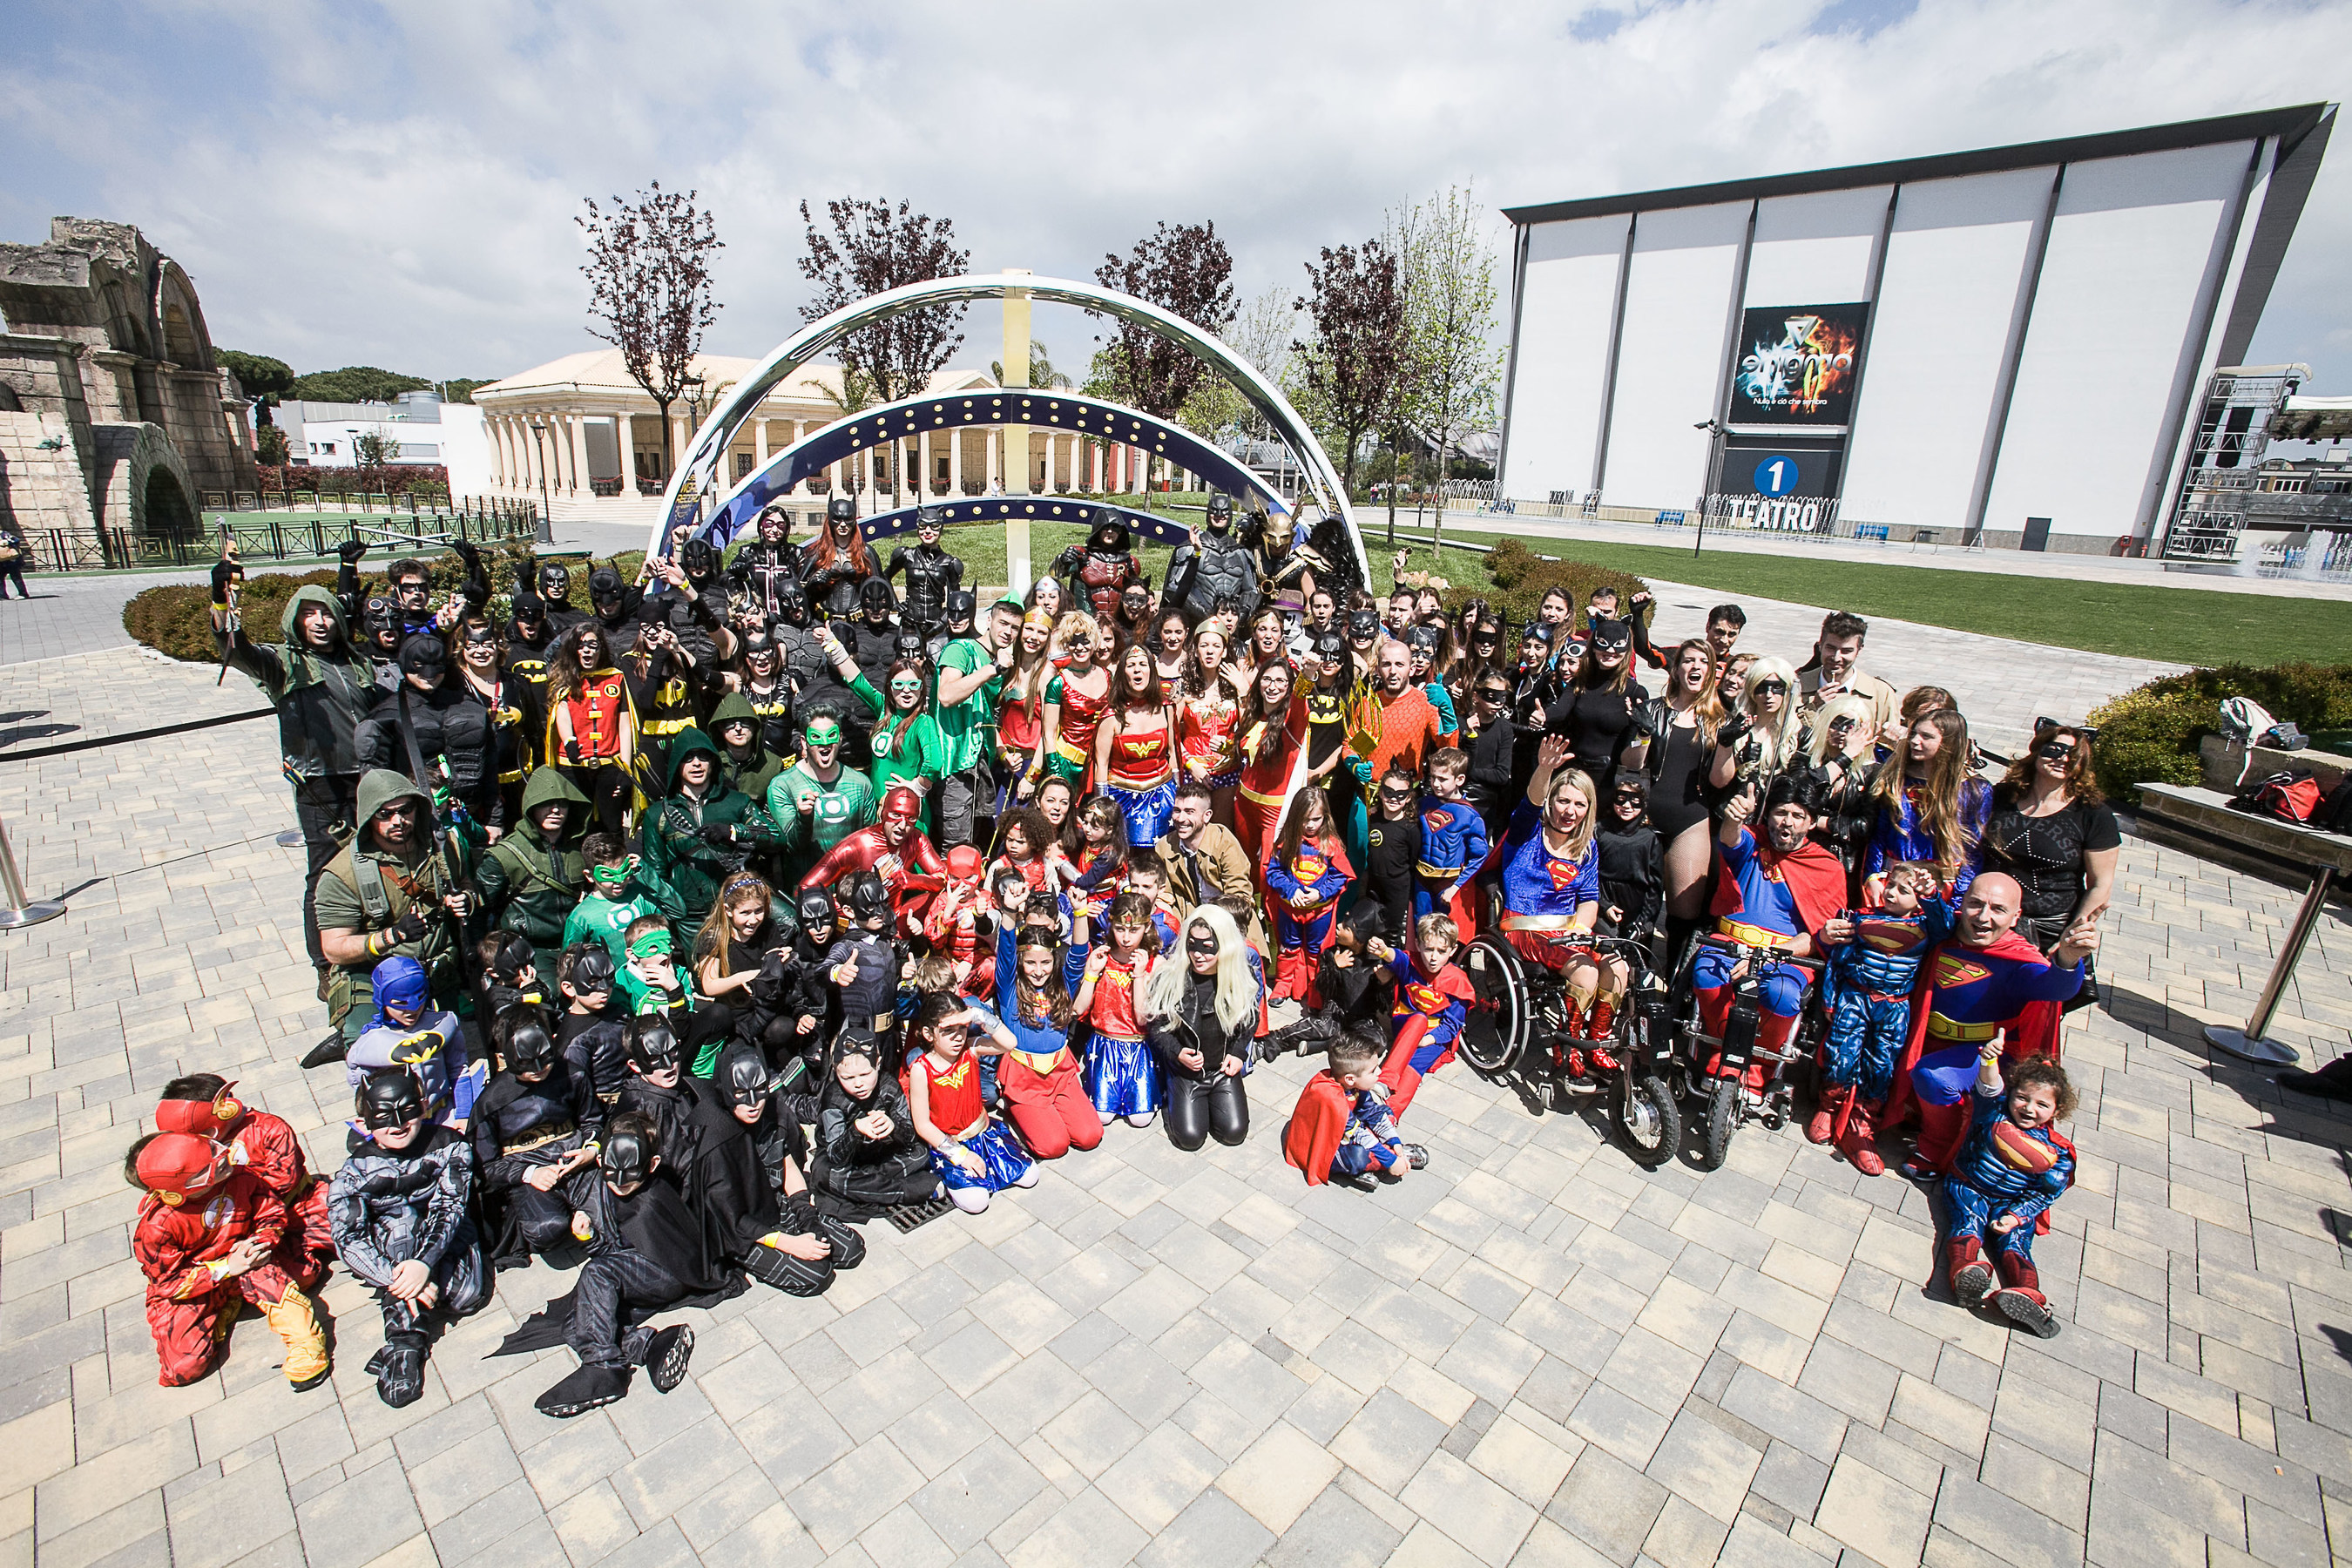 Fans dressed as DC Comics Super Heroes gather to set the Guinness World Record for most people dressed as DC ...